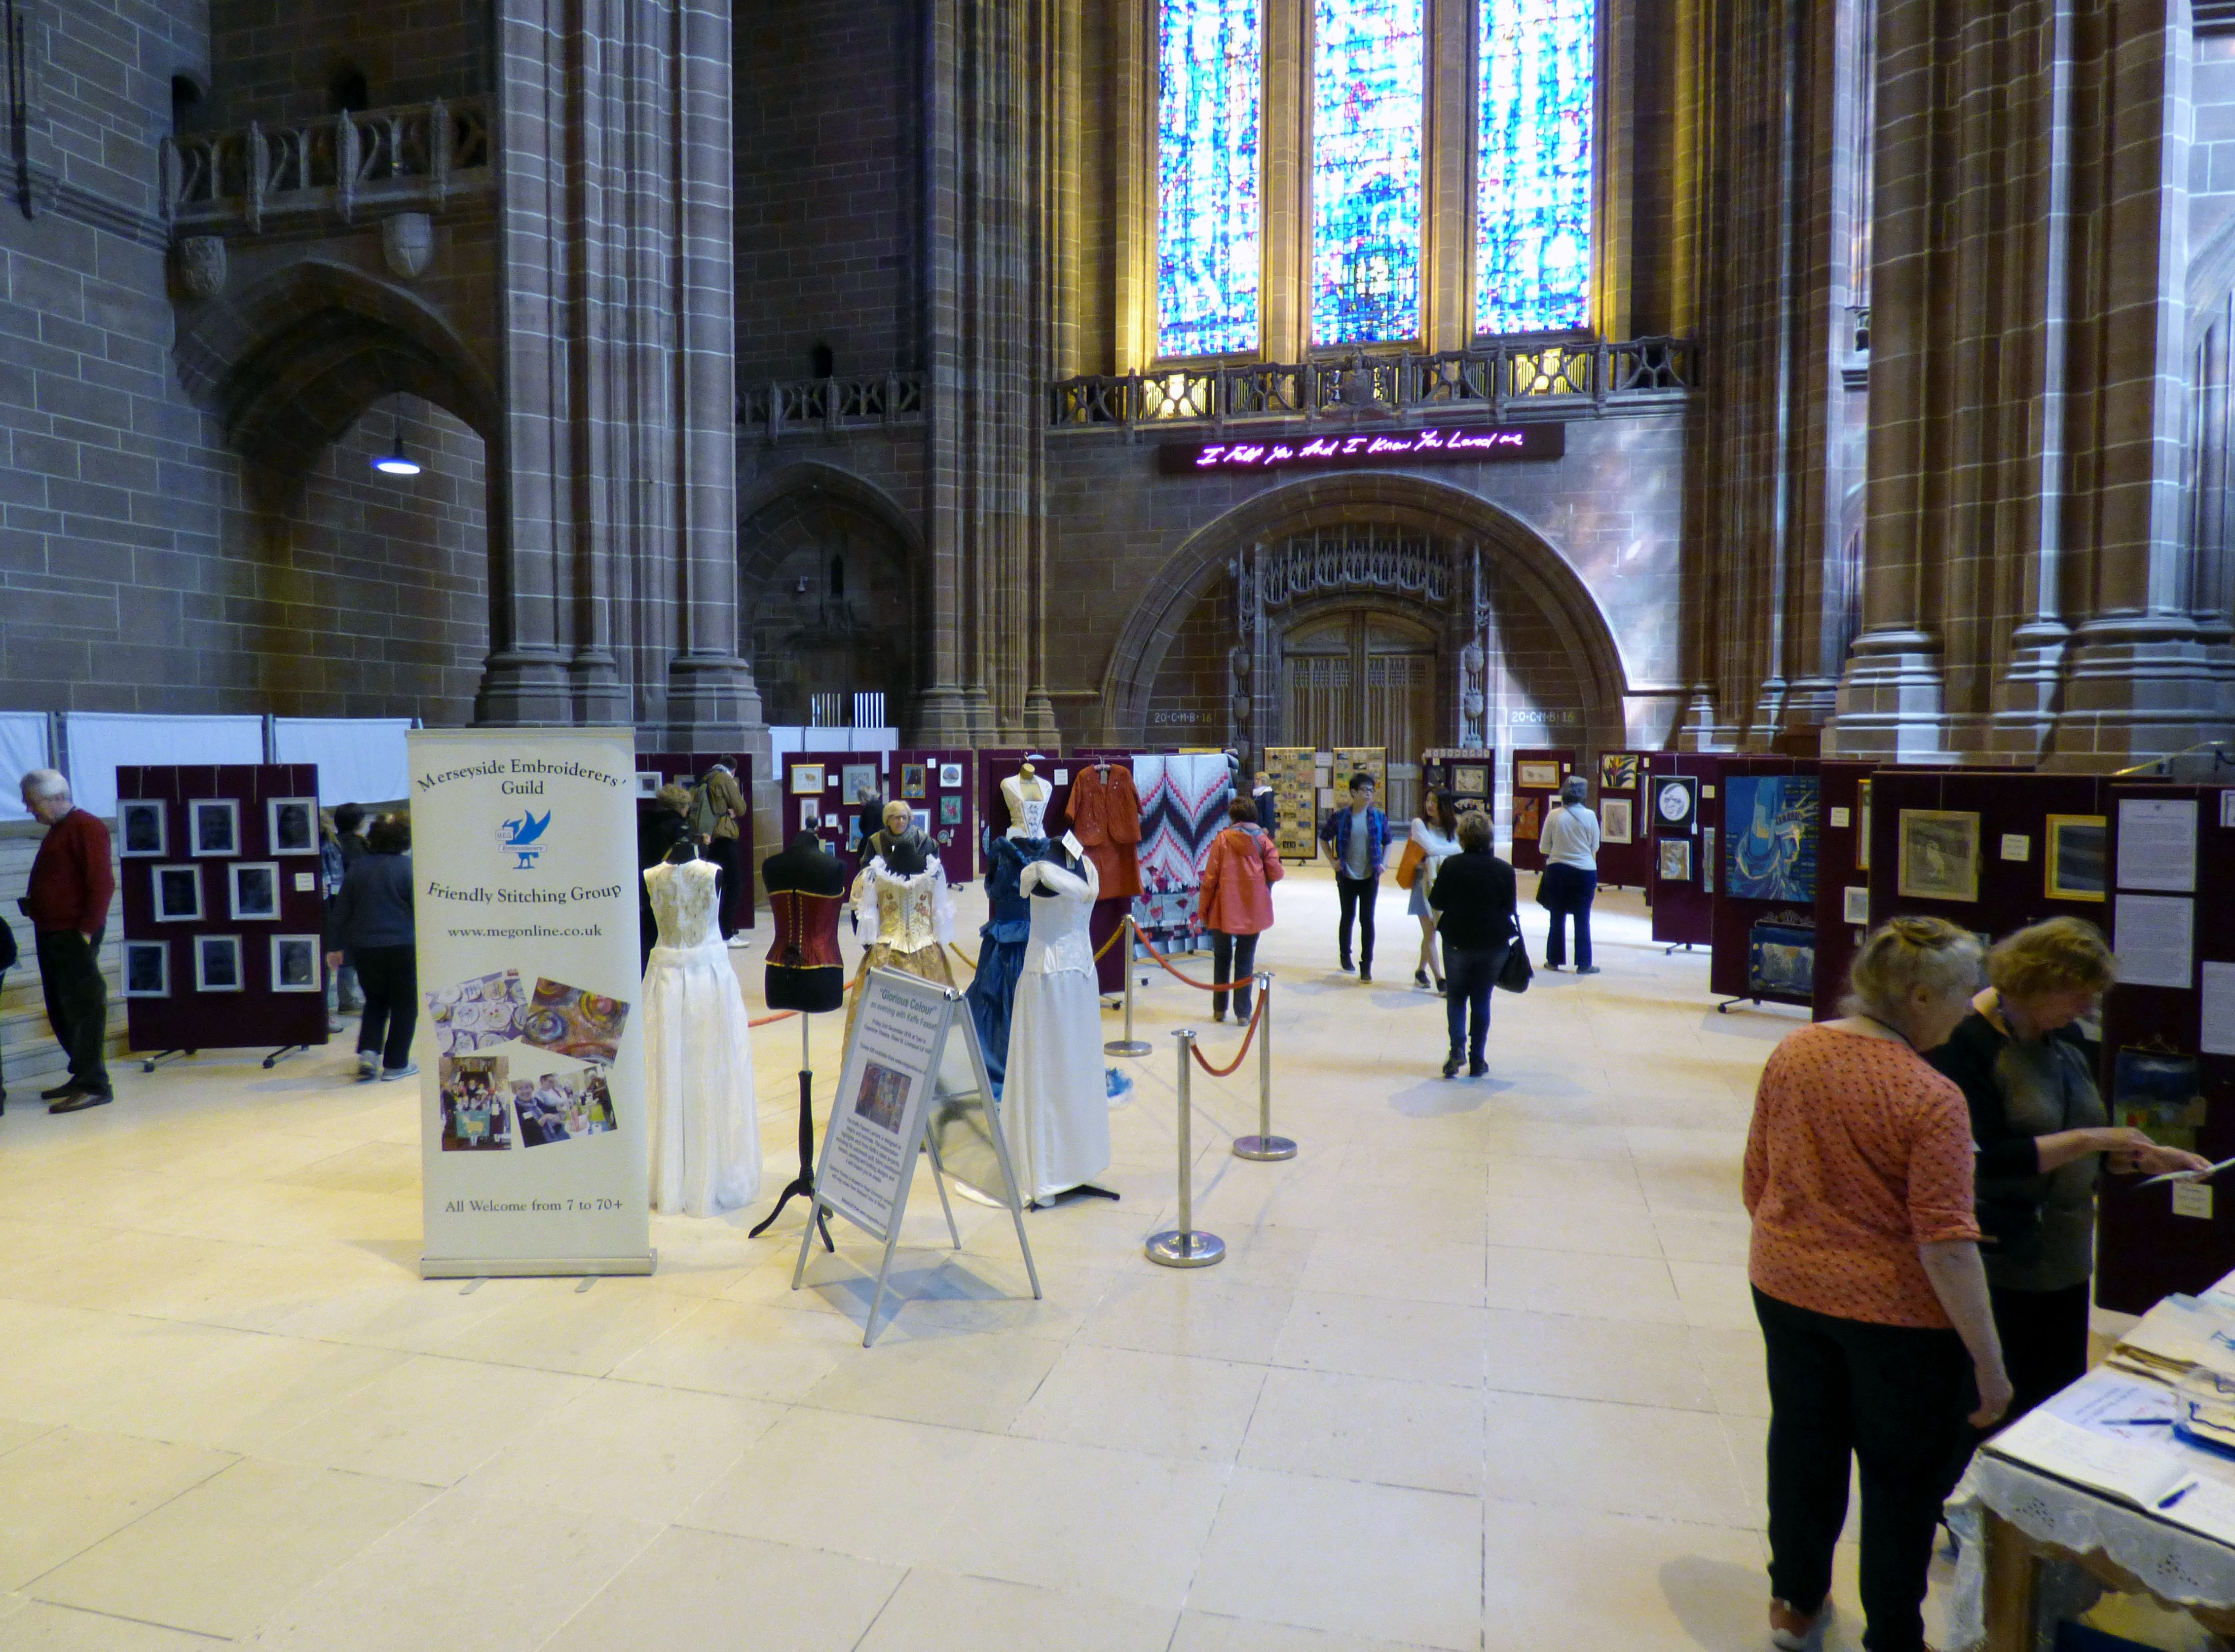 MEG 60 Glorious Years exhibition at Liverpool Anglican Cathedral 2016